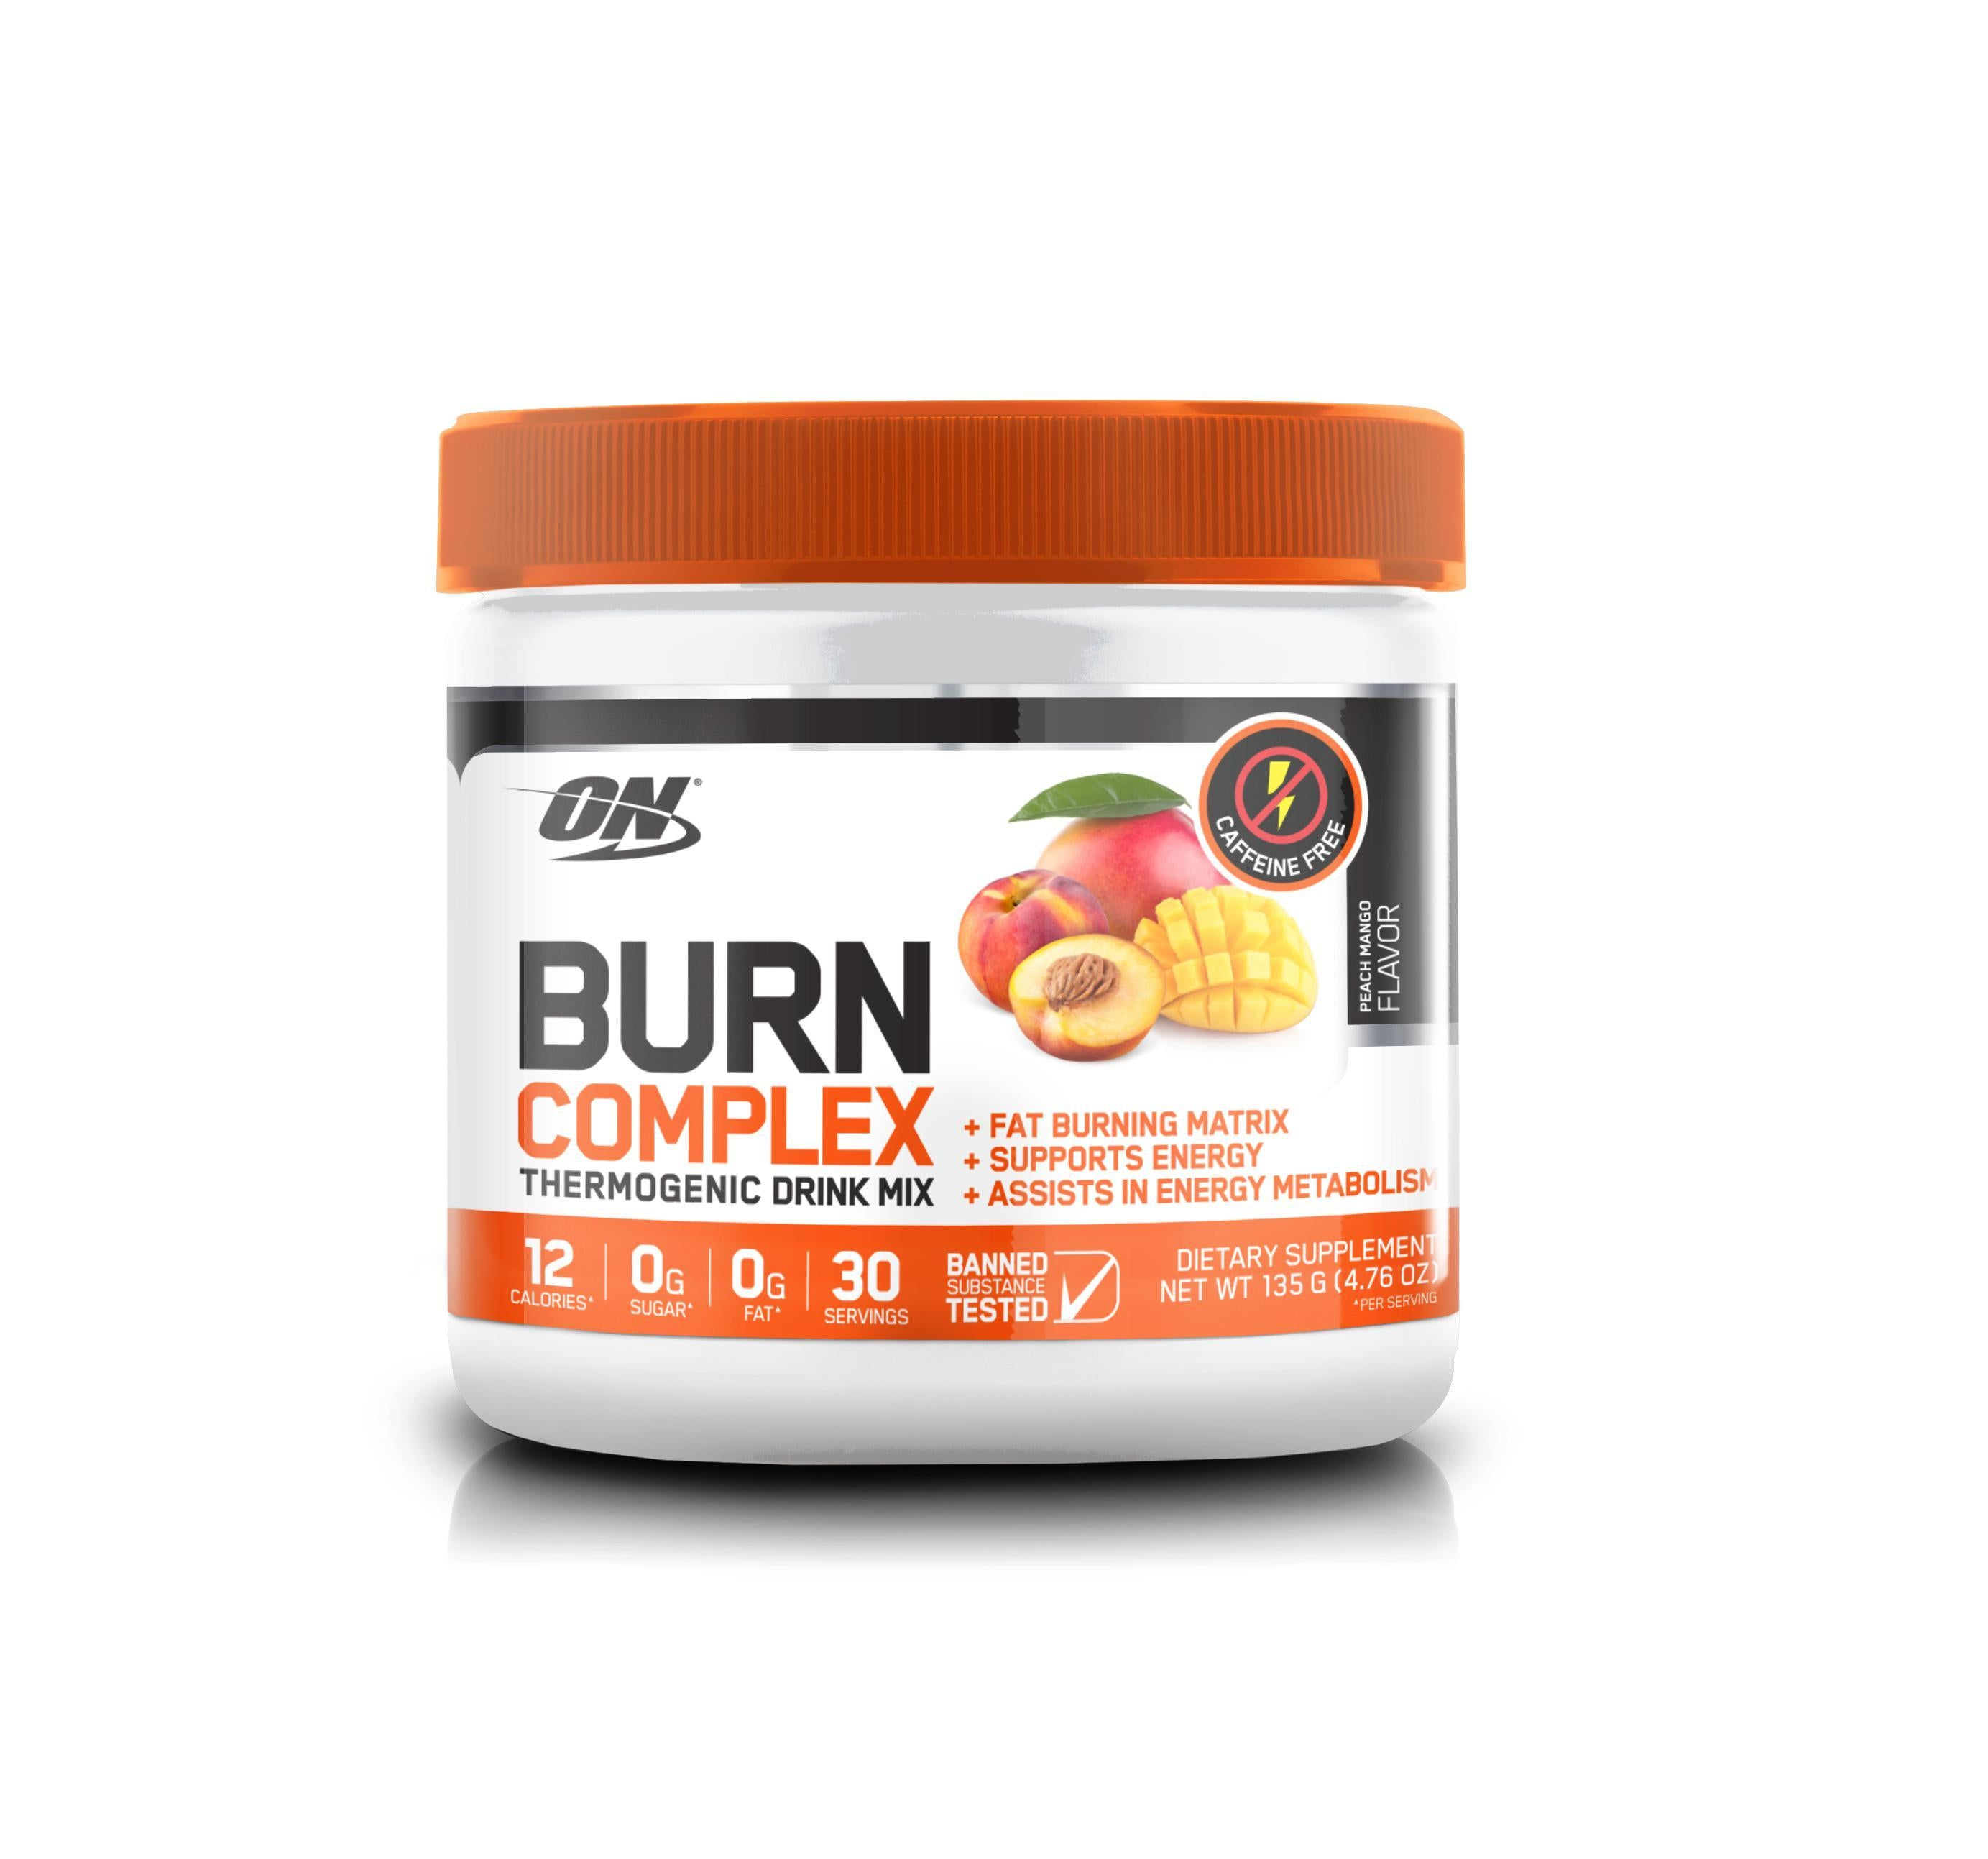 ON Burn Complex STIM FREE-Weight Loss - Fat Burners-Optimum Nutrition-30 Serves-PEACH MANGO-Thrive Health and Nutrition